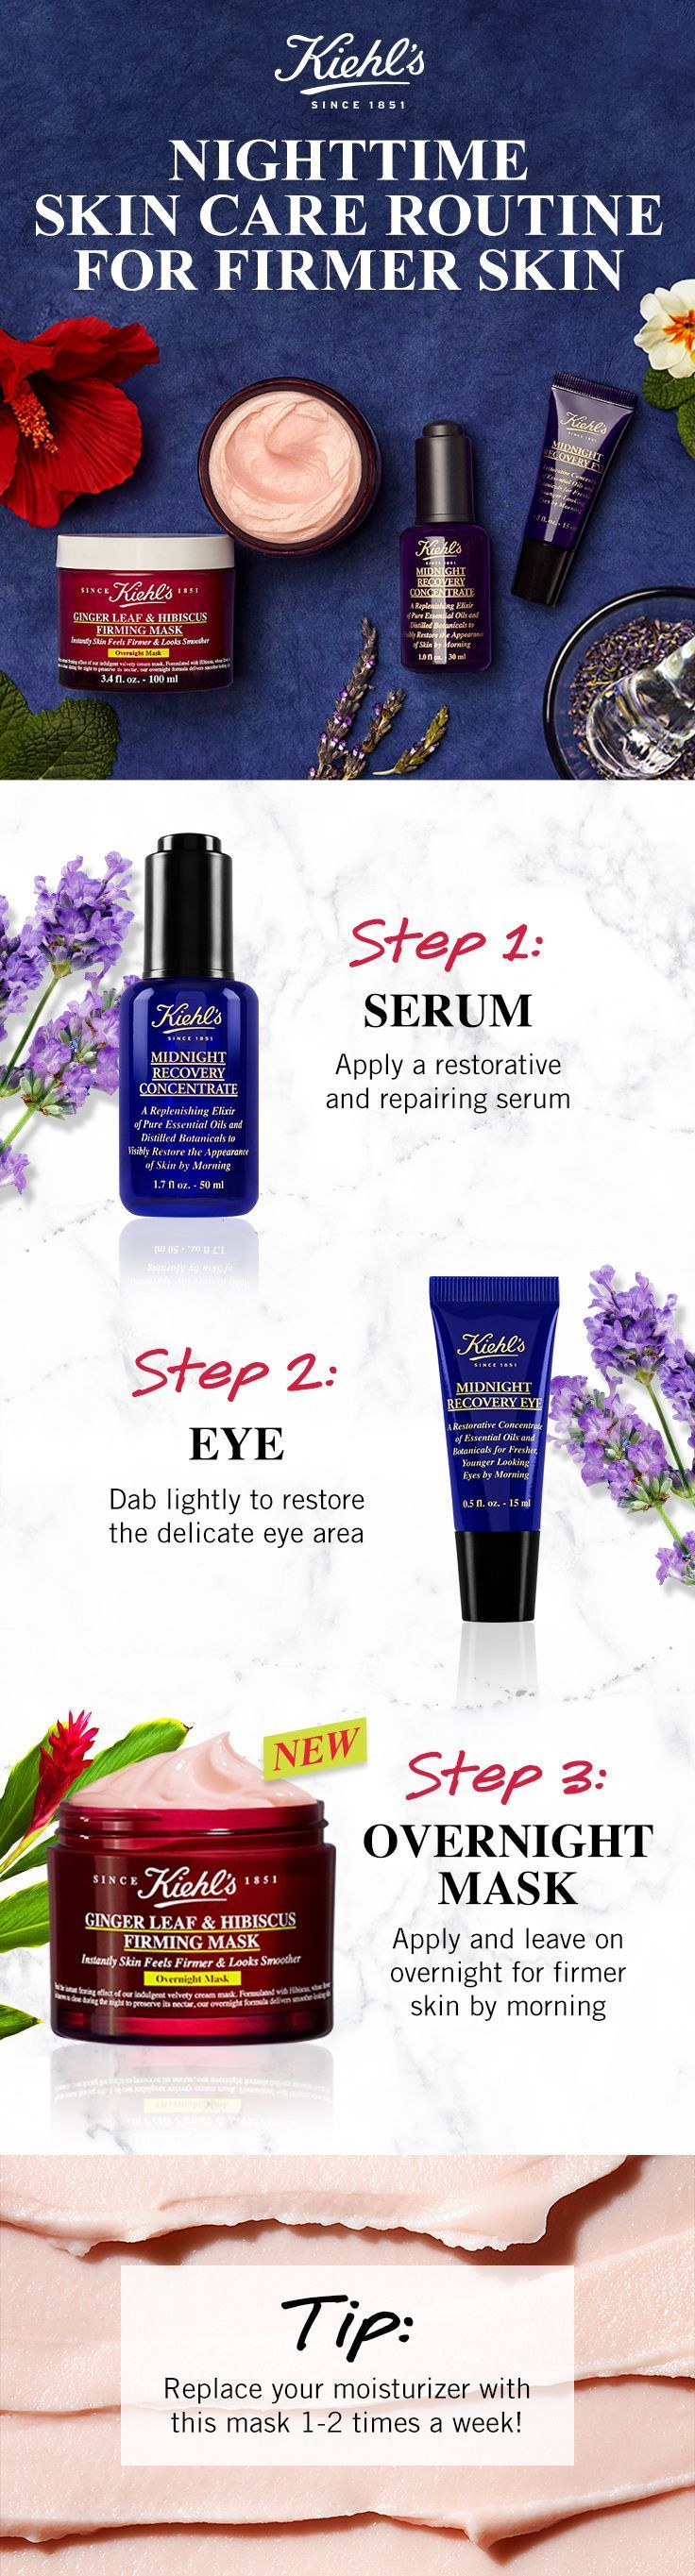 Kiehl S Overnight Firming Mask Is The Next Step In Your Night Time Anti Aging Skin Care Routine Use After Your Serum Anti Aging Hautpflege Hautpflege Routine